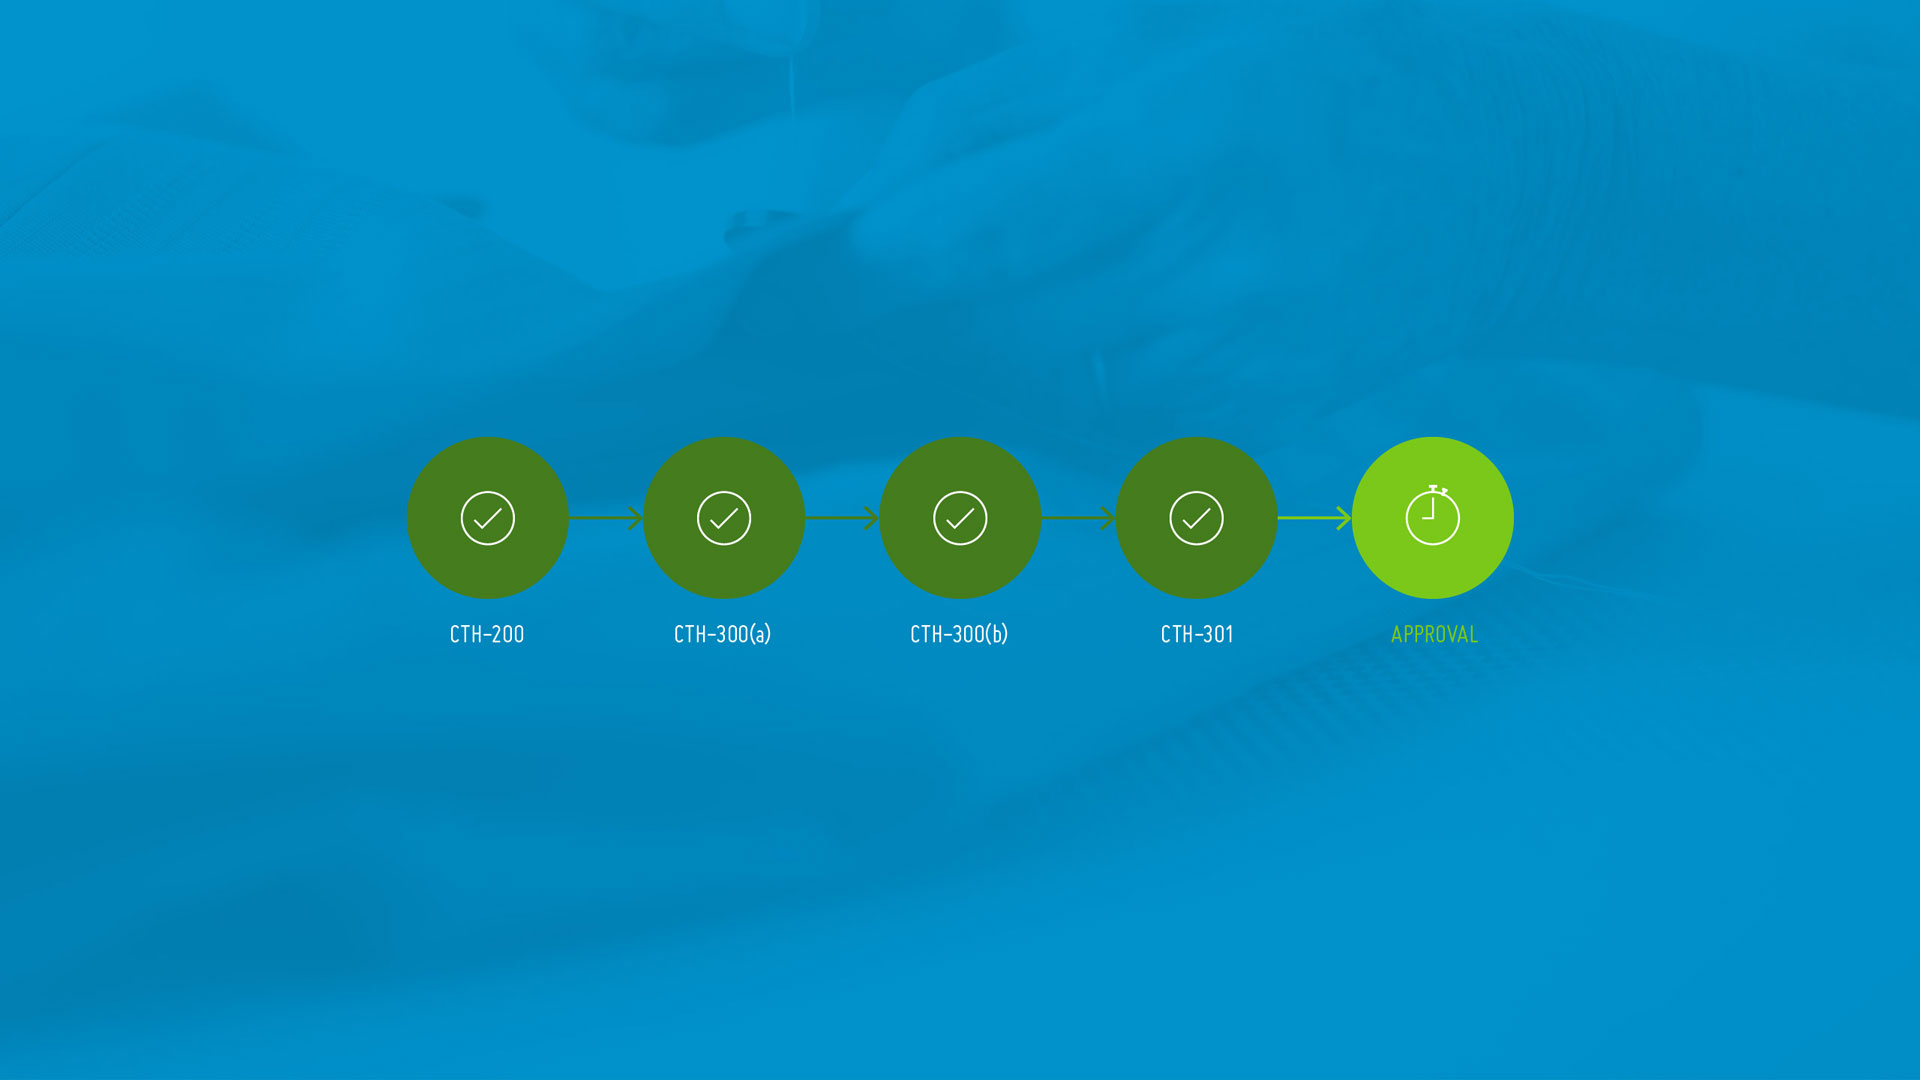 cynapsus website icons on blue background